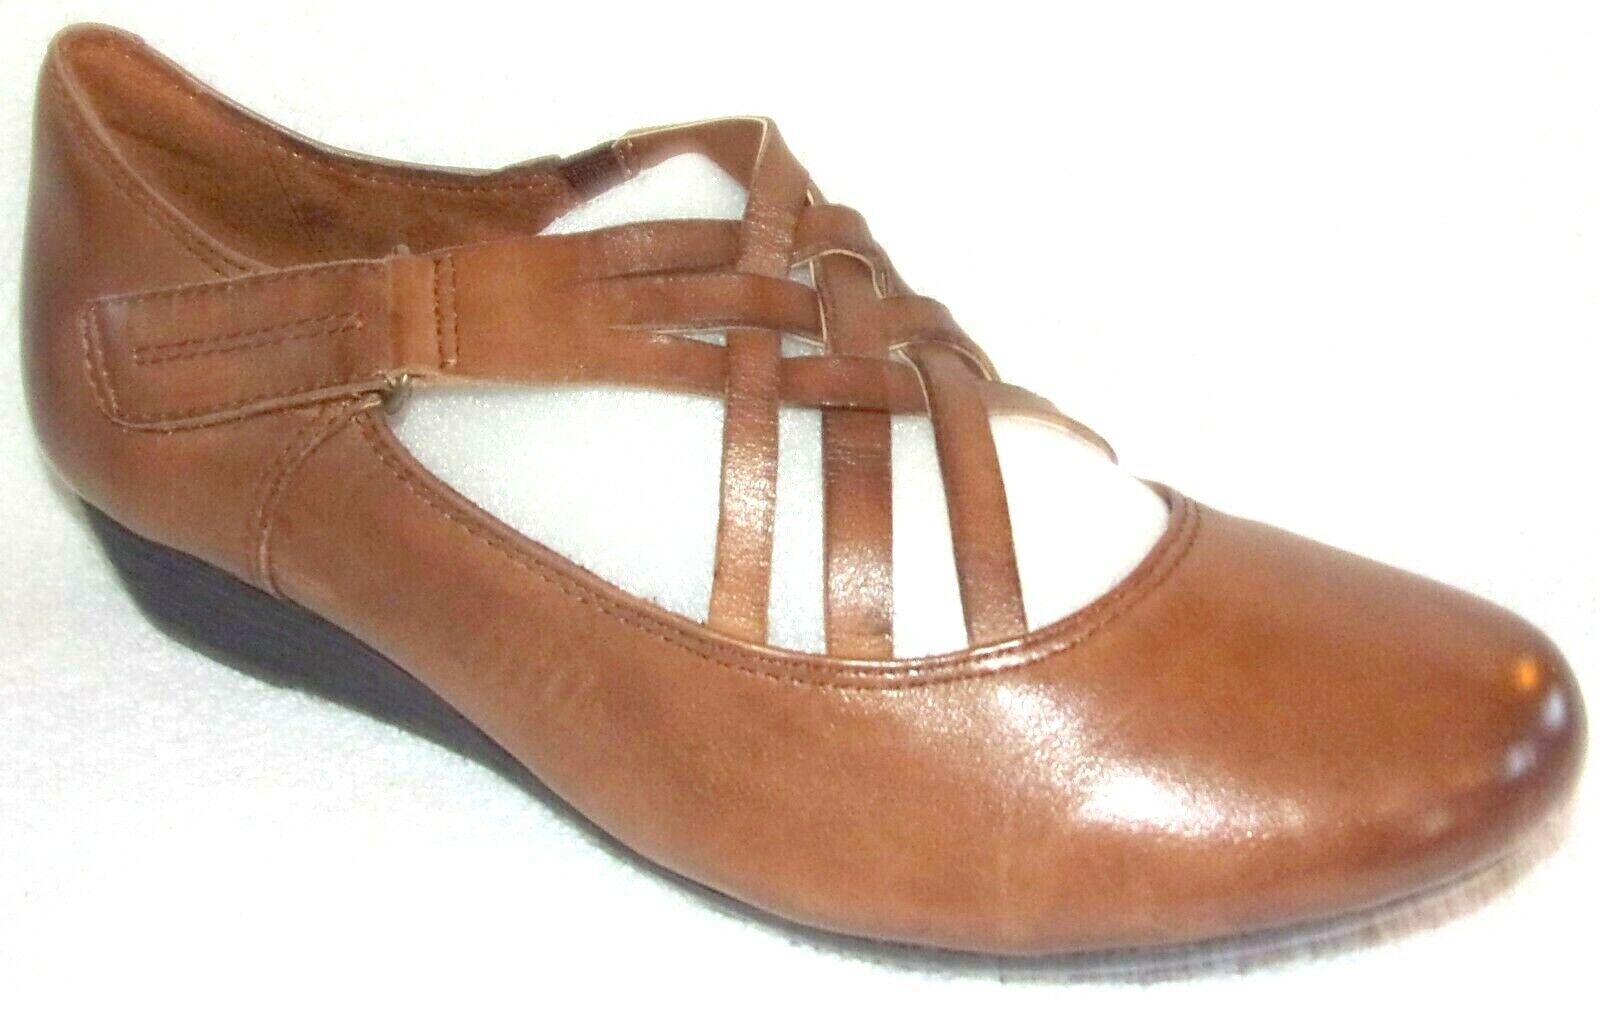 New Rockport Cobb Hill Judson Cross Strap Brown Leather Wedge Shoes 7 M